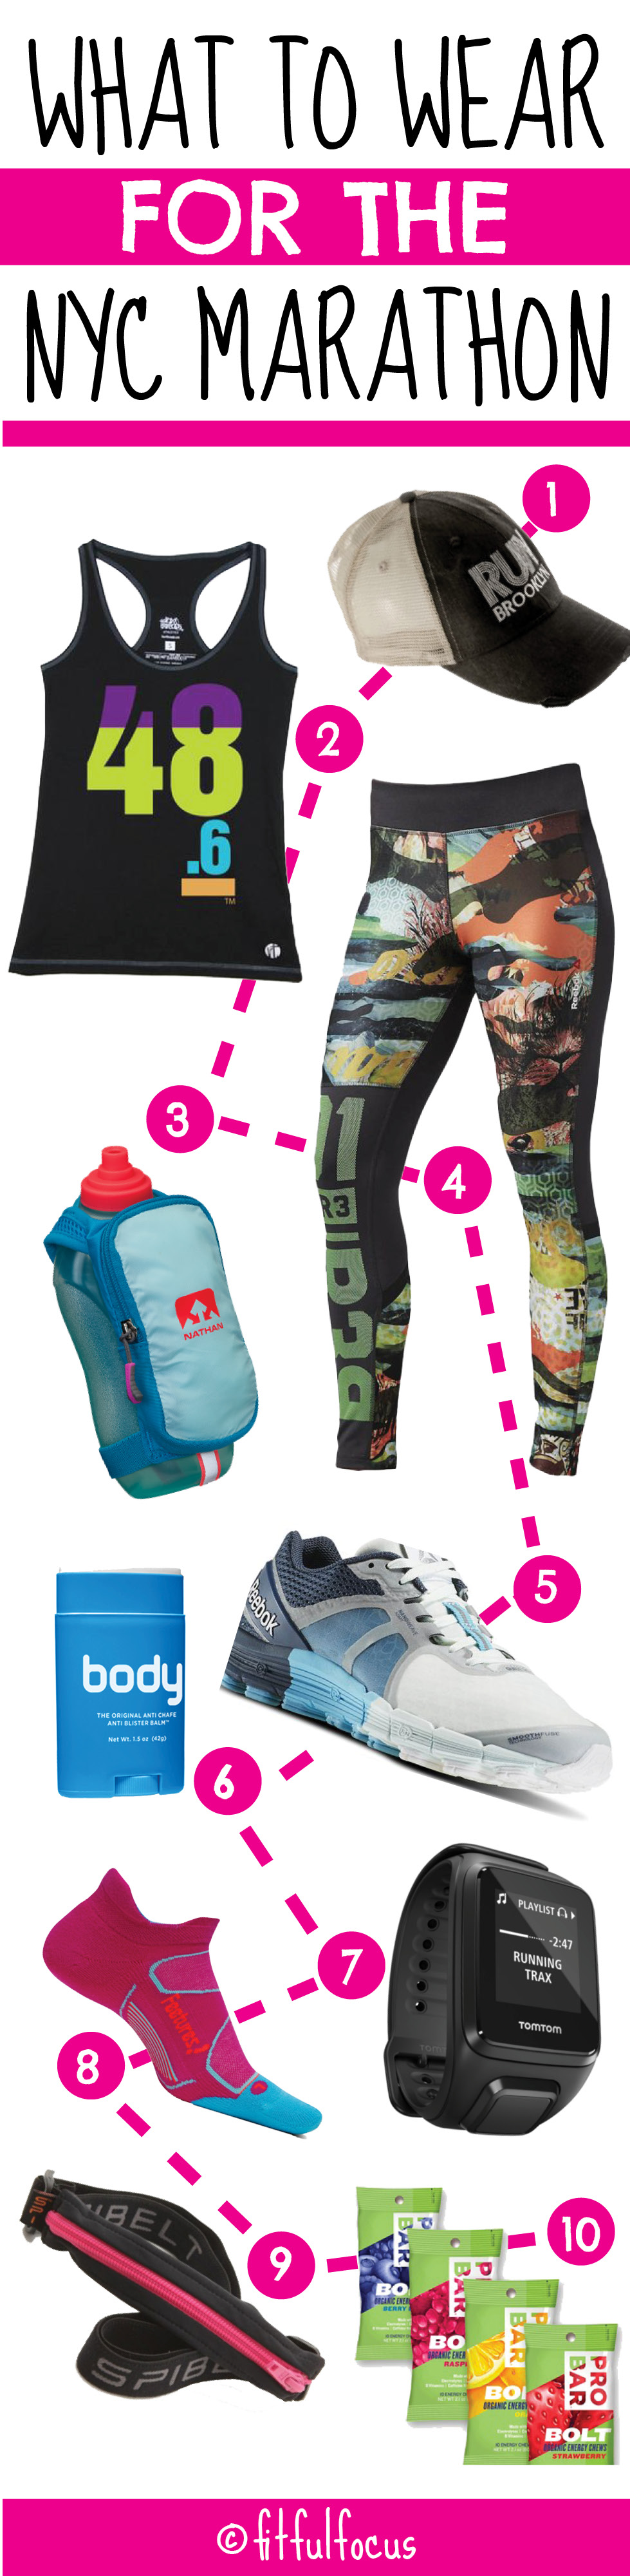 c511423c4f0 What To Wear For The NYC Marathon